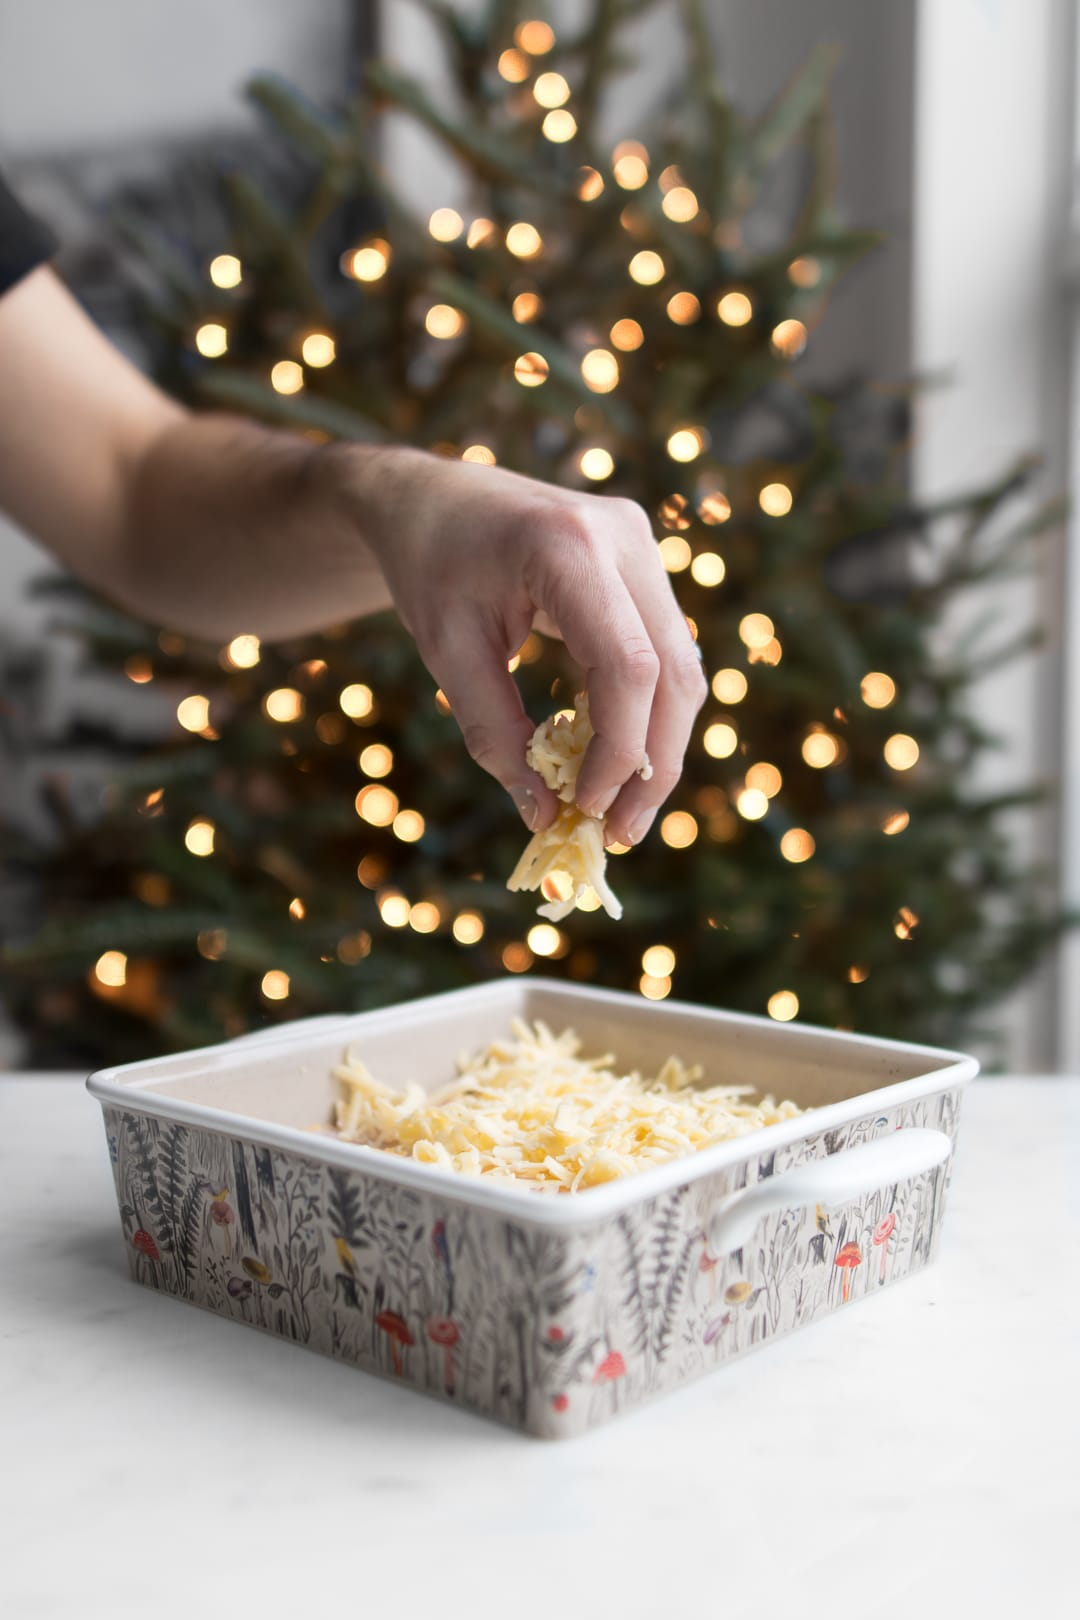 Philip's hand sprinkling cheese on wife saver with Christmas tree in the background